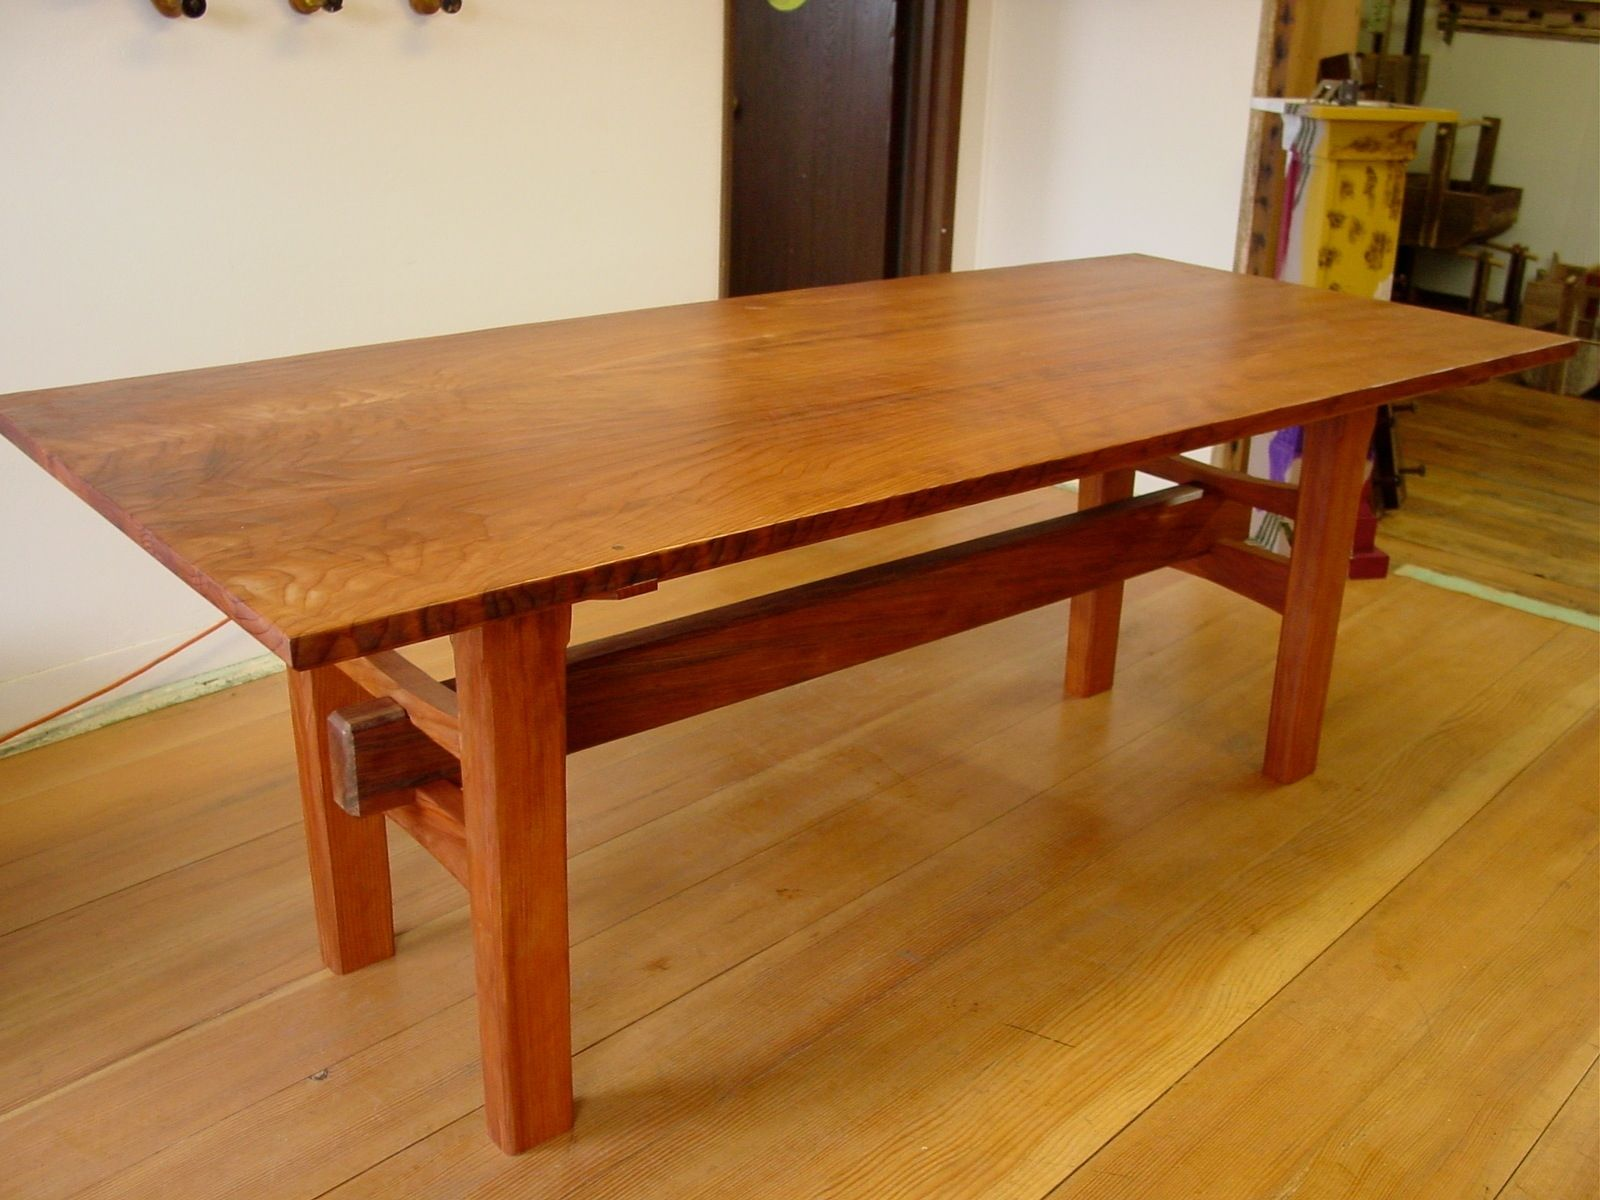 Handmade Redwood Table With Japanese Joinery By Heritage